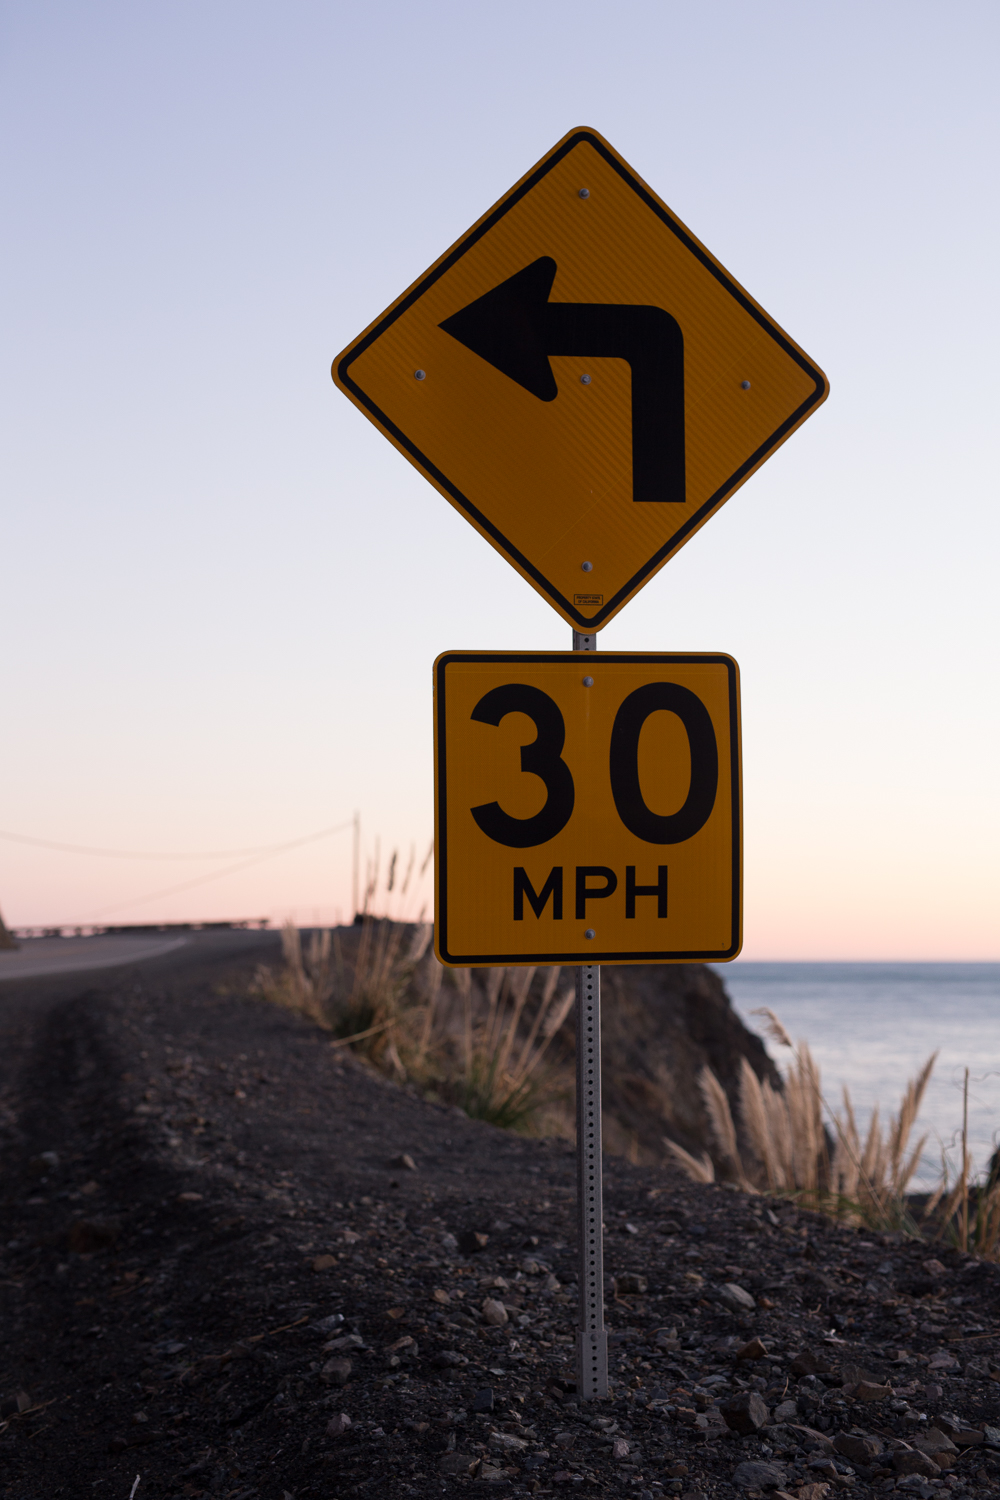 california-road-trip-route-1-katie-donnelly-photography-16.jpg